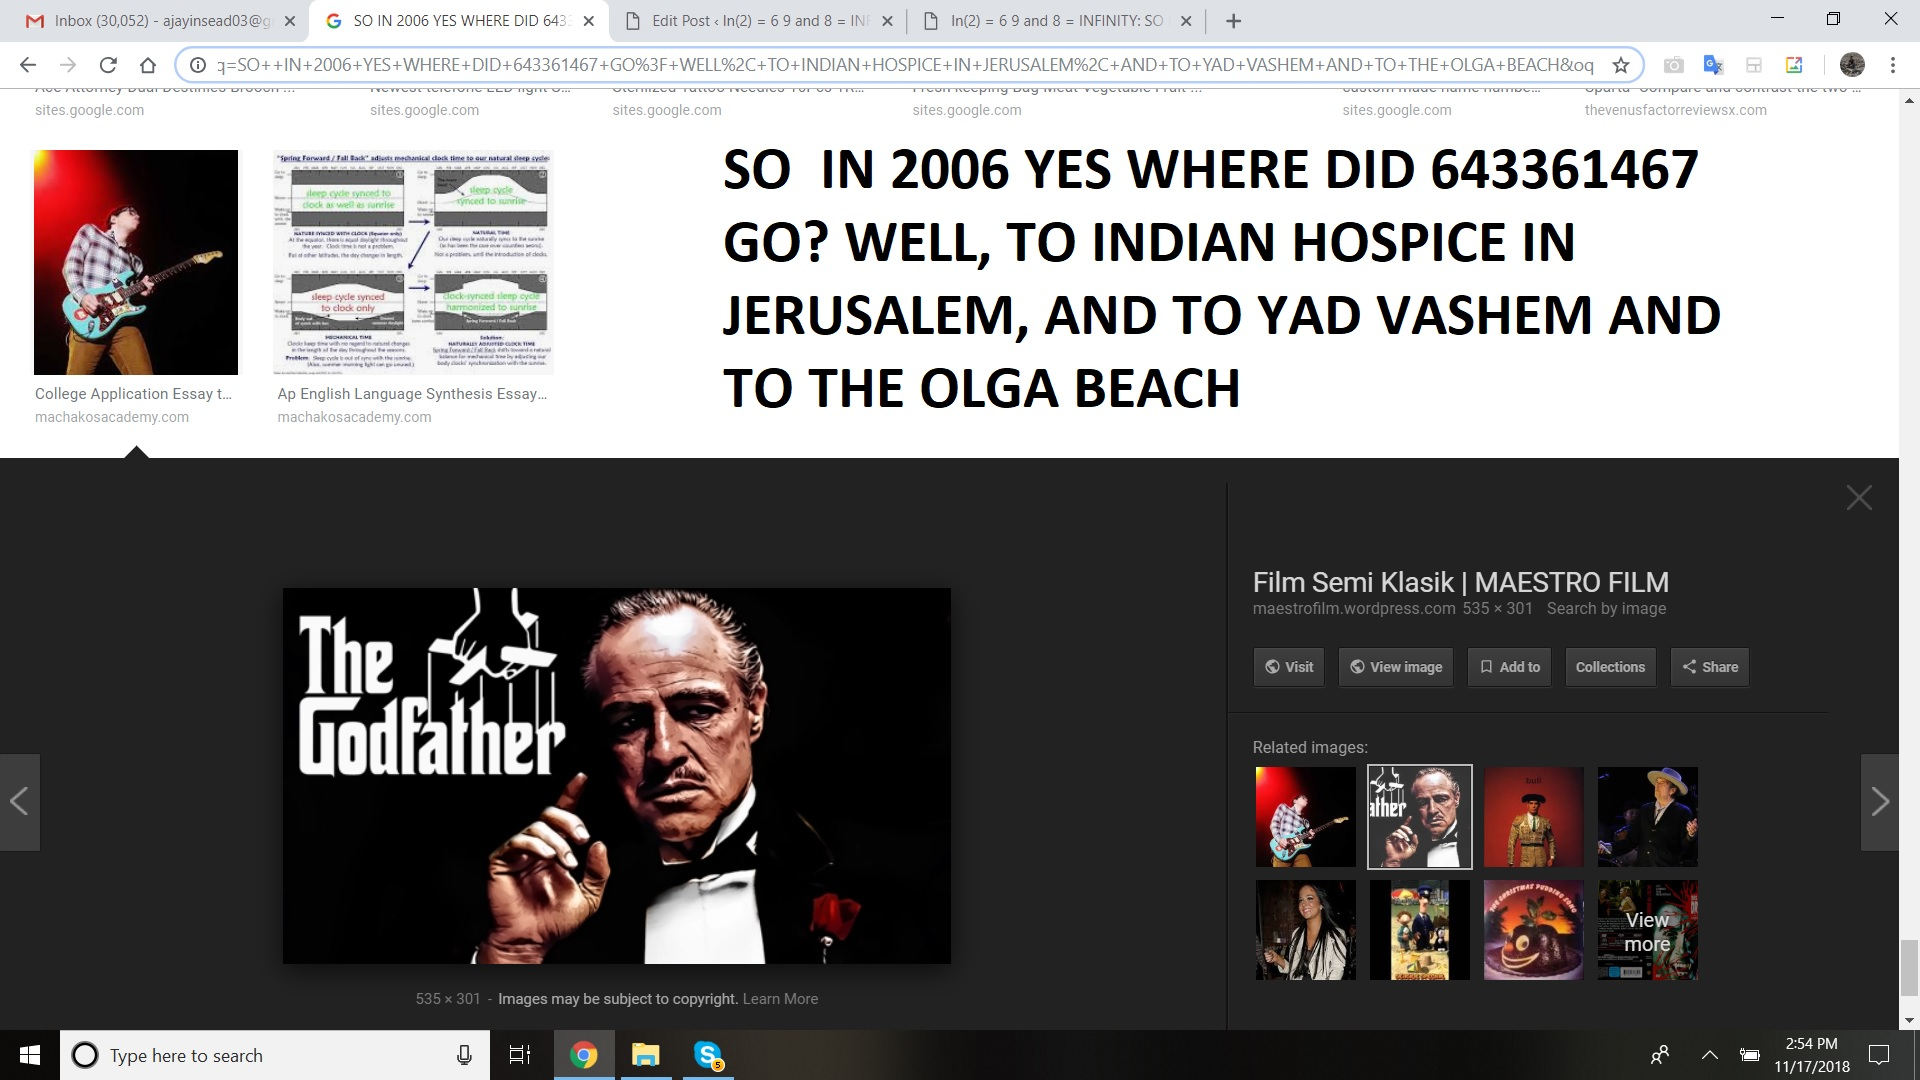 SO WHERE DID U GO - REFERENCE 2006 ISRAEL - OK NOW U KNOW SO IN 2006 YES WHERE DID 643361467 GO WELL, TO INDIAN HOSPICE IN JERUSALEM, AND TO YAD VASHEM AND TO THE OLGA BEACH